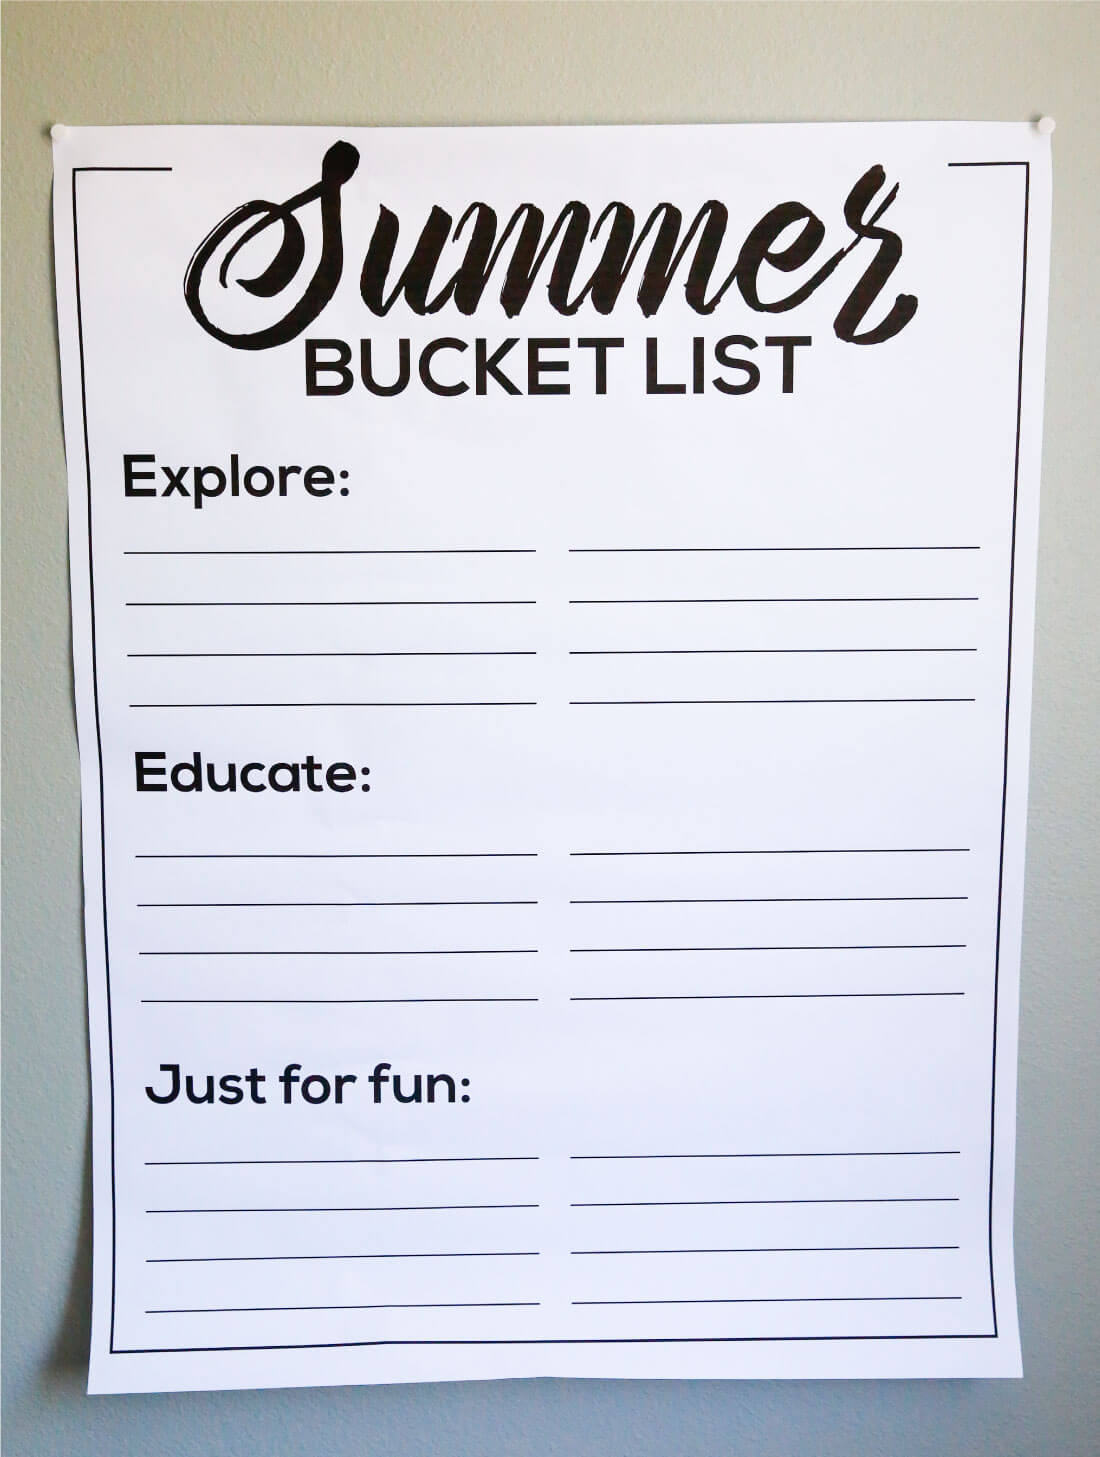 Printable Summer Bucket List - made to help have a more fun and memorable summer. www.thirtyhandmadedays.com